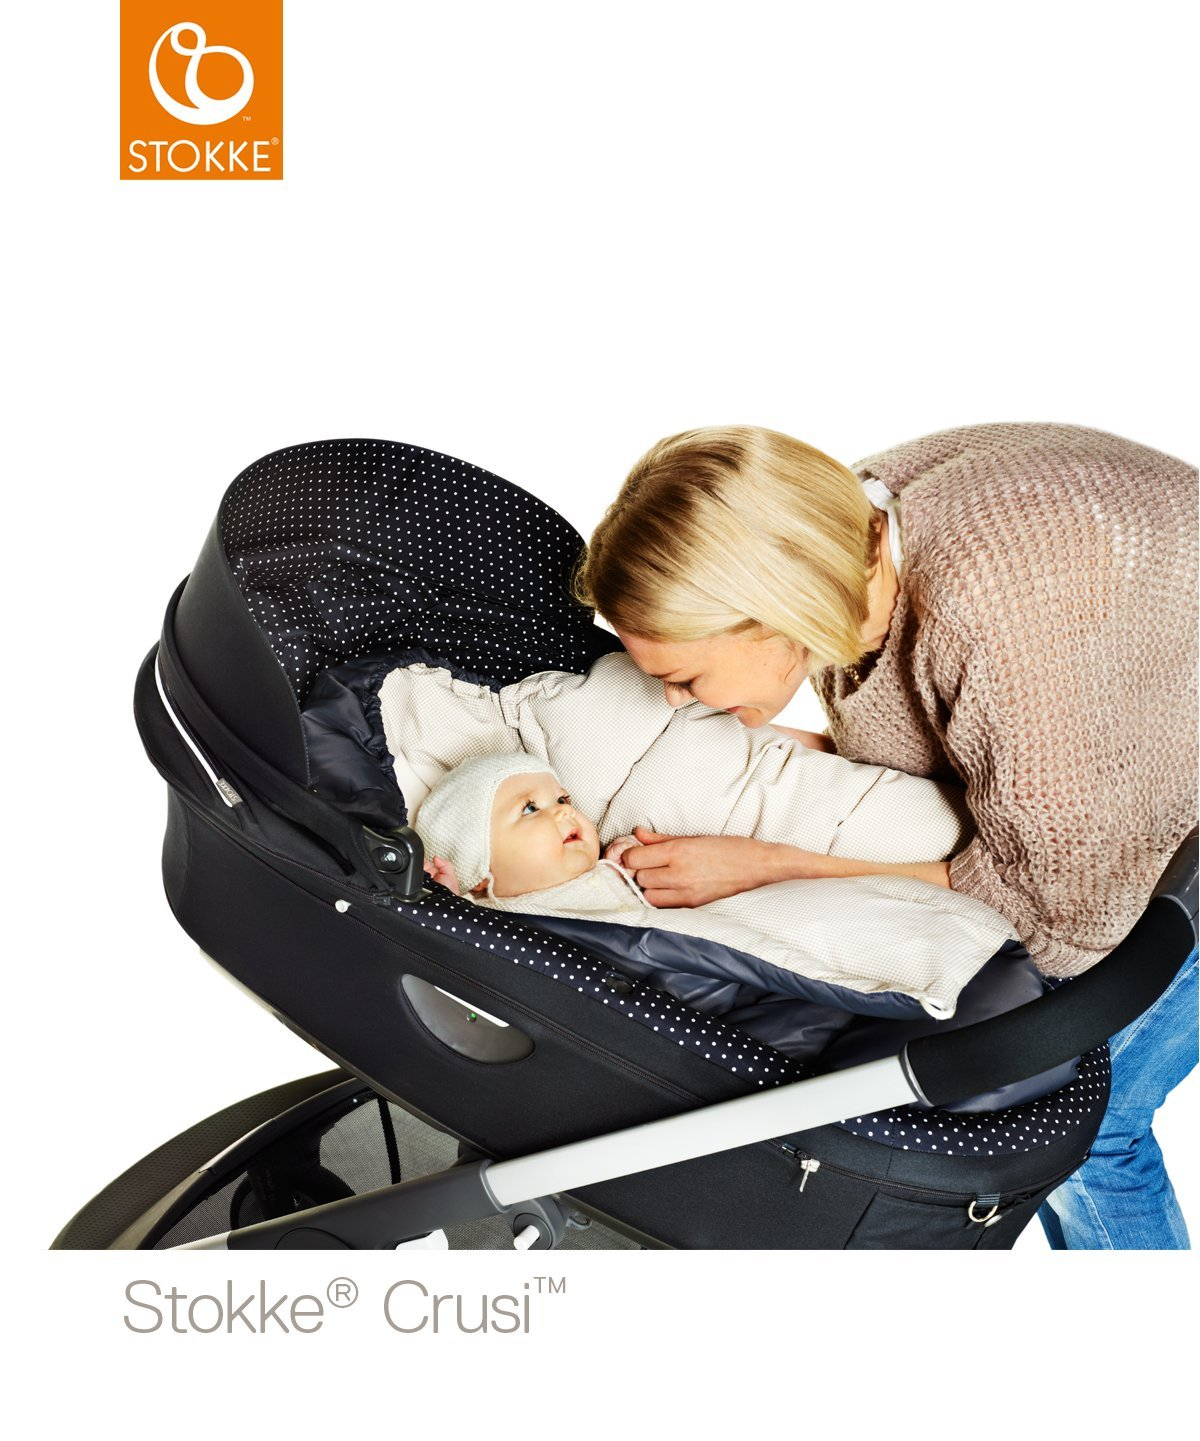 Stokke Crusi Carry Cot - Purple by Stokke (Image #5)